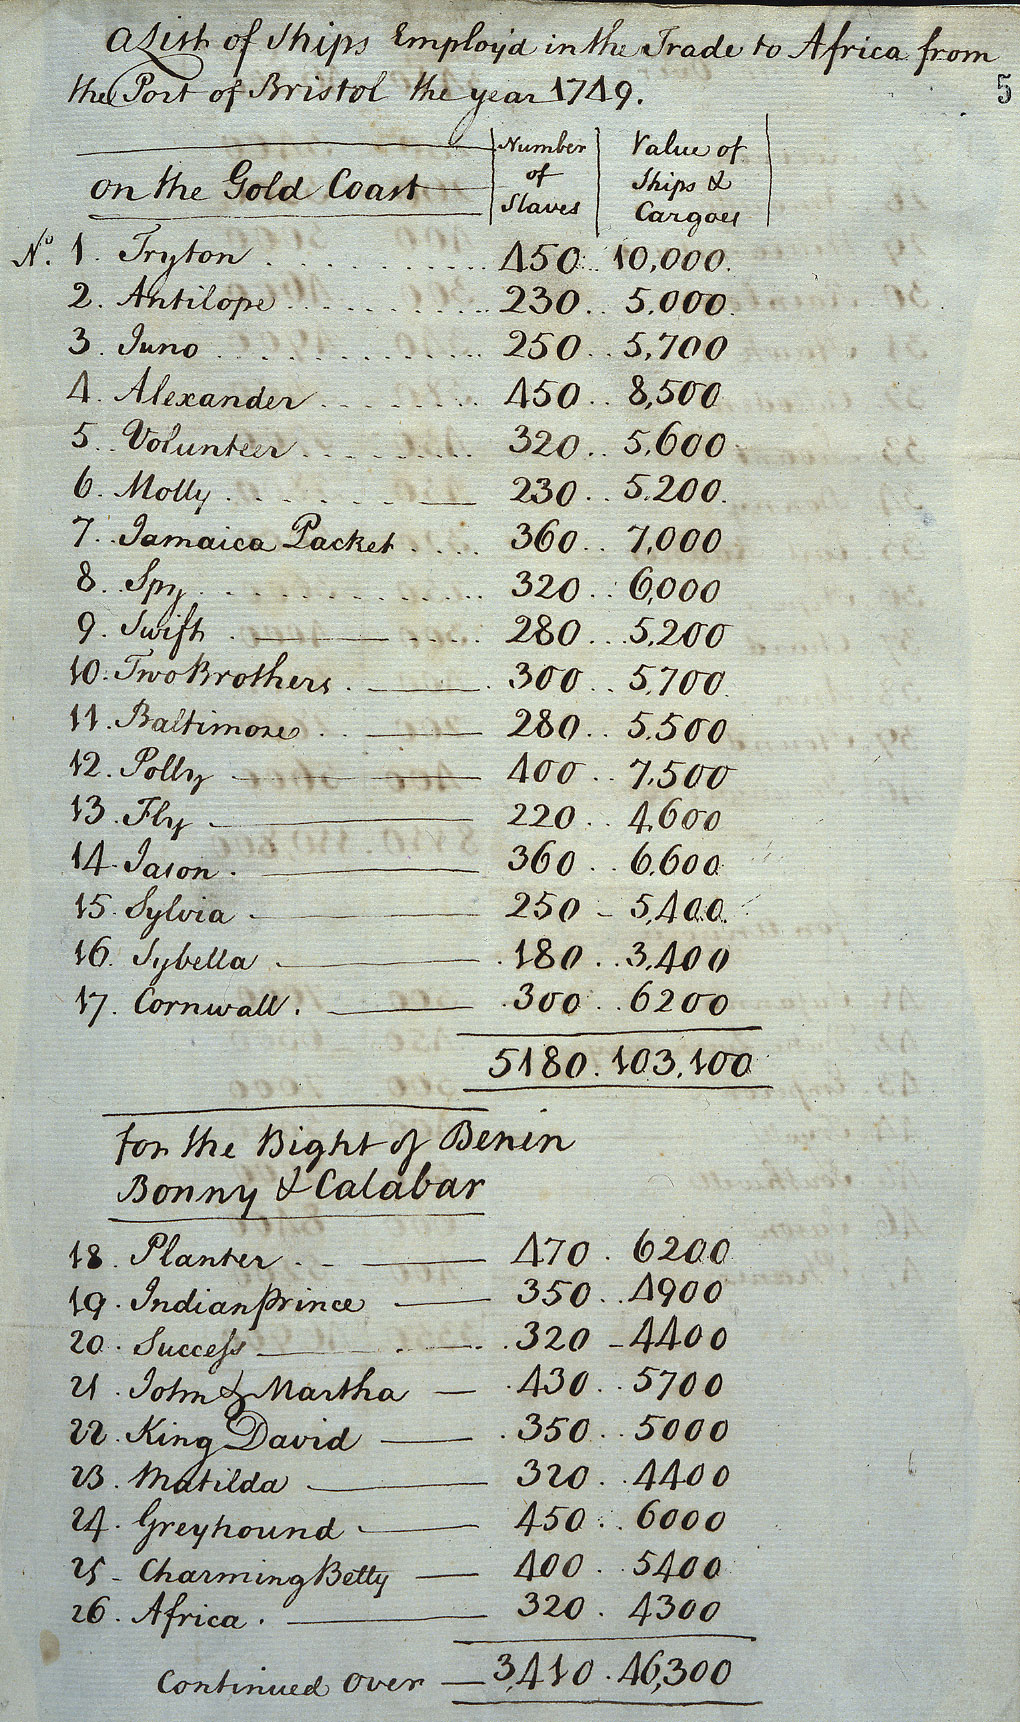 Ships employed in the Trade to Africa from the Port of Bristol, 1749 (CO 388/45 Pt 1 f.5)